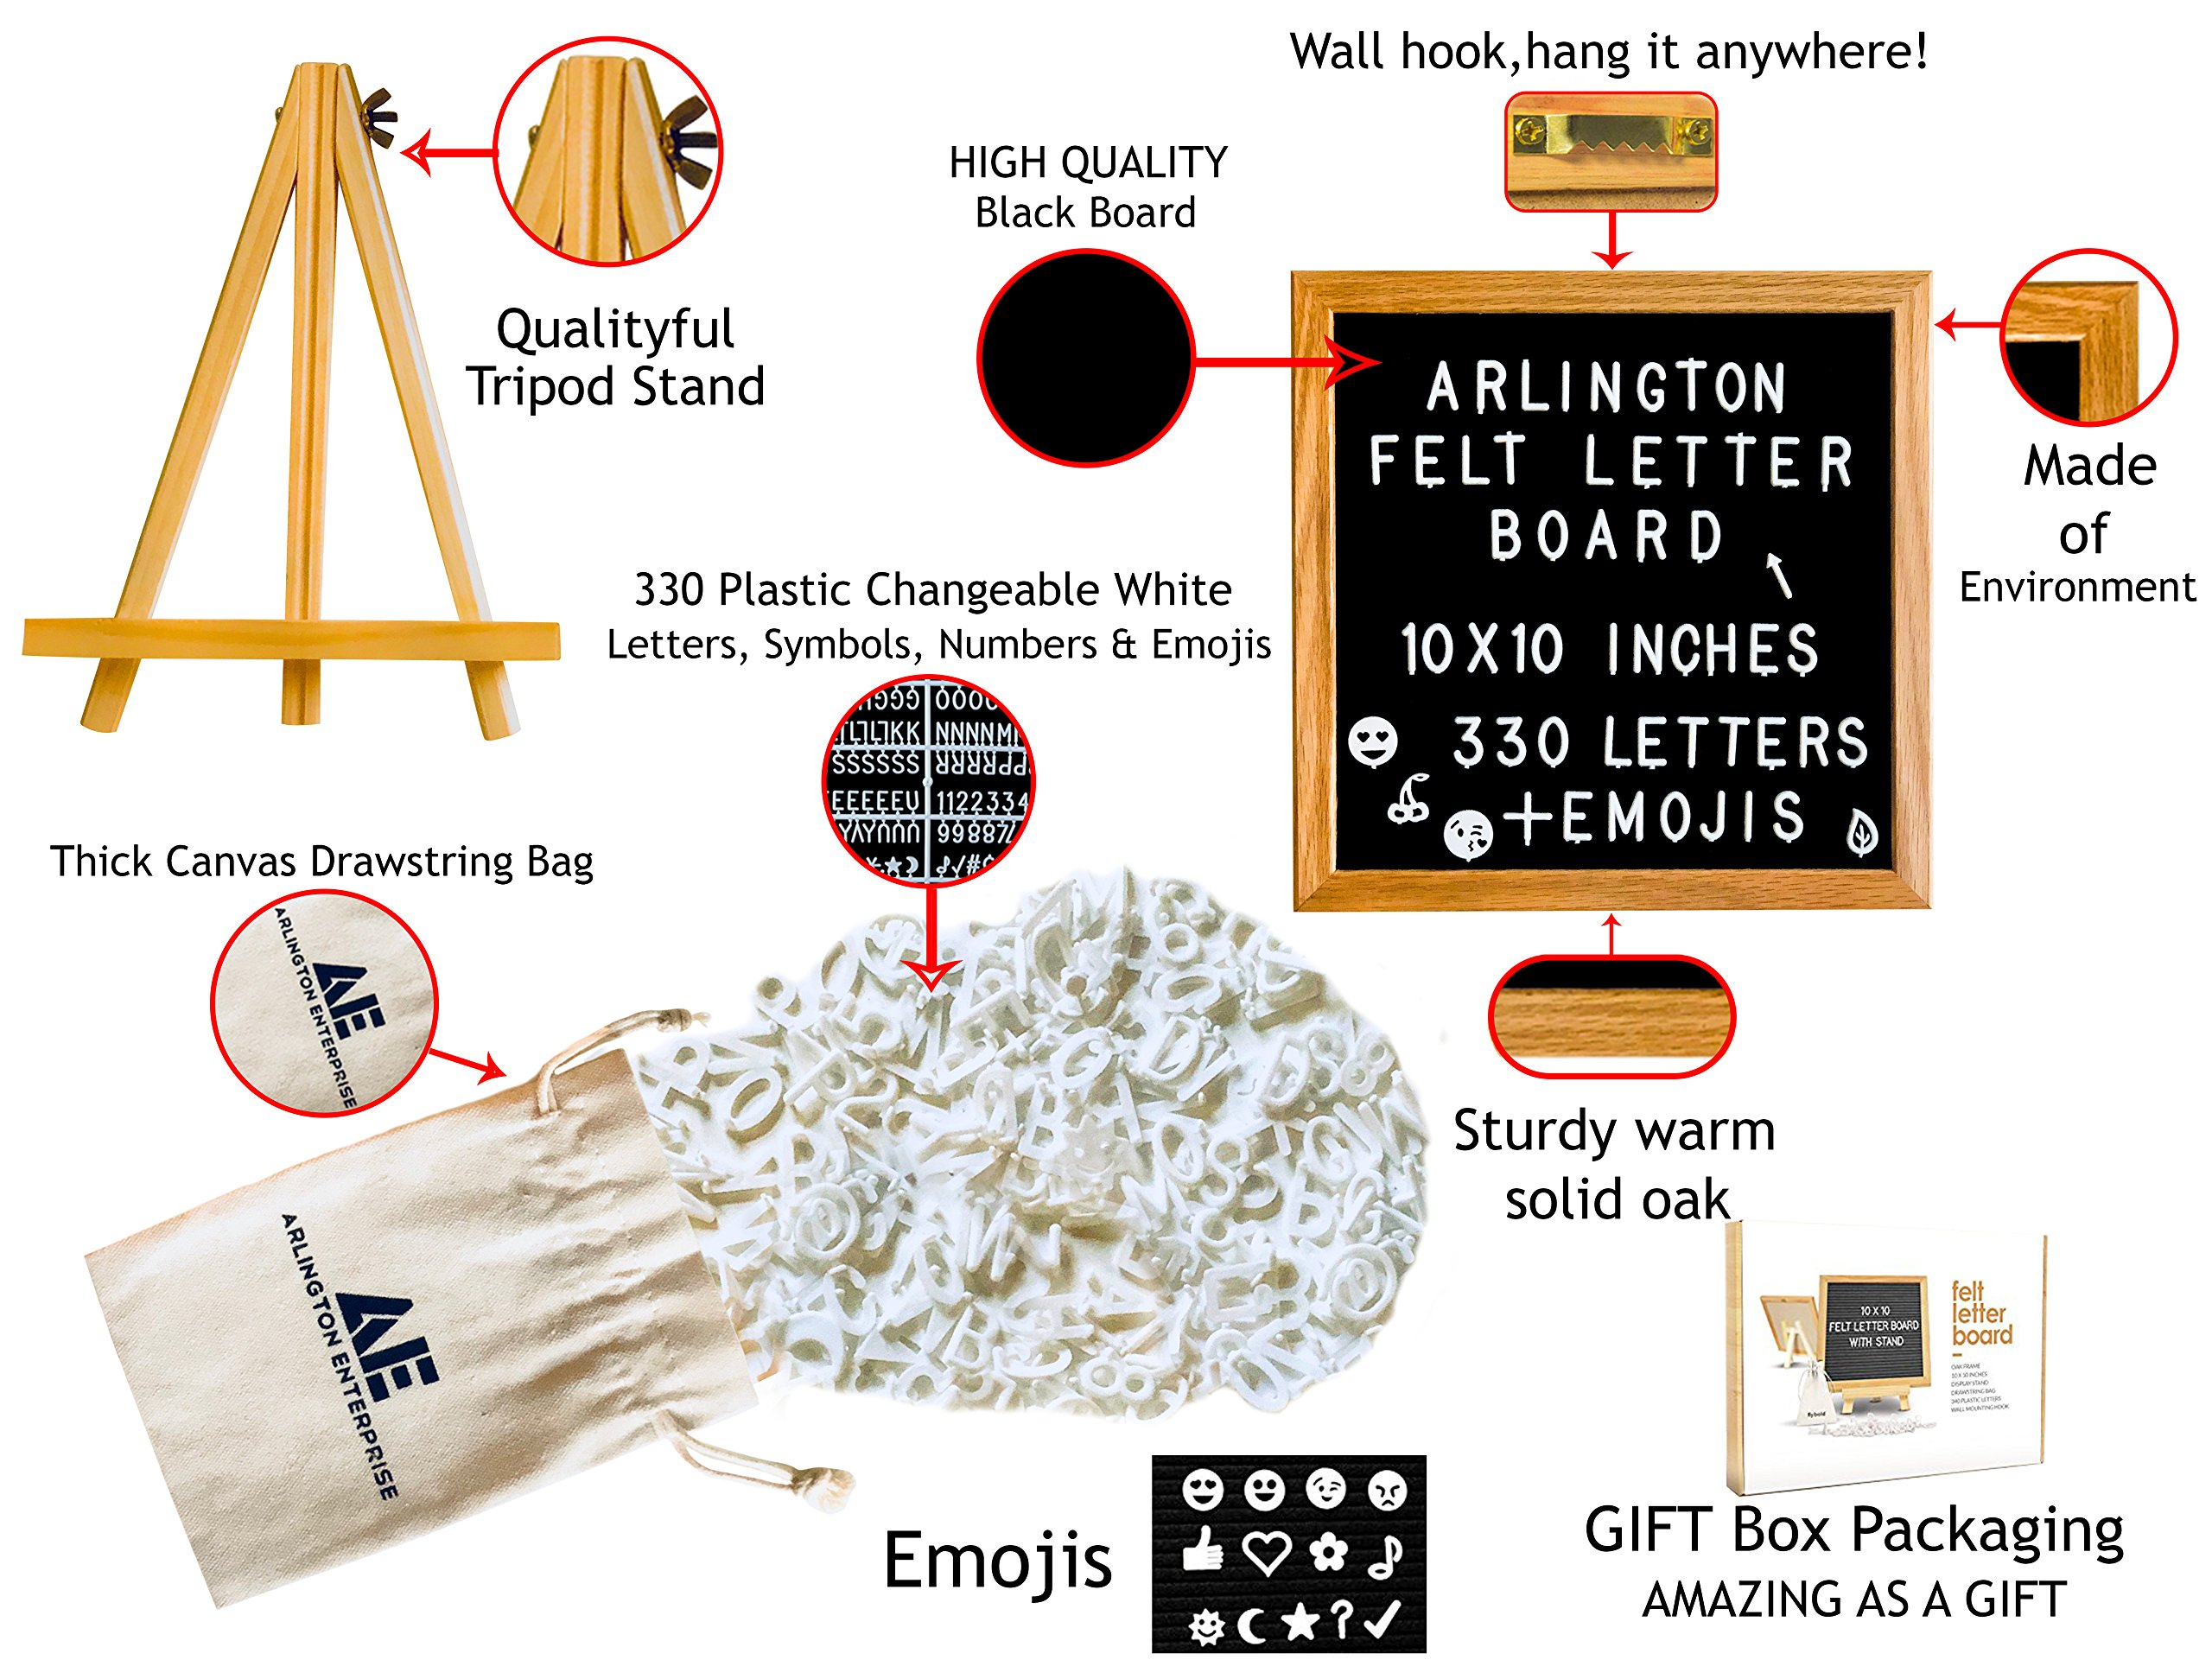 Felt Letter Board with 295 White Detachable Letters + 35 Emojis Framed in a Rustic 10x10 inches Oak Wood. Comes with: Free Oak Tripod Stand, Scissors, and Canvas Bag. by Arlington Enterprise (Image #2)